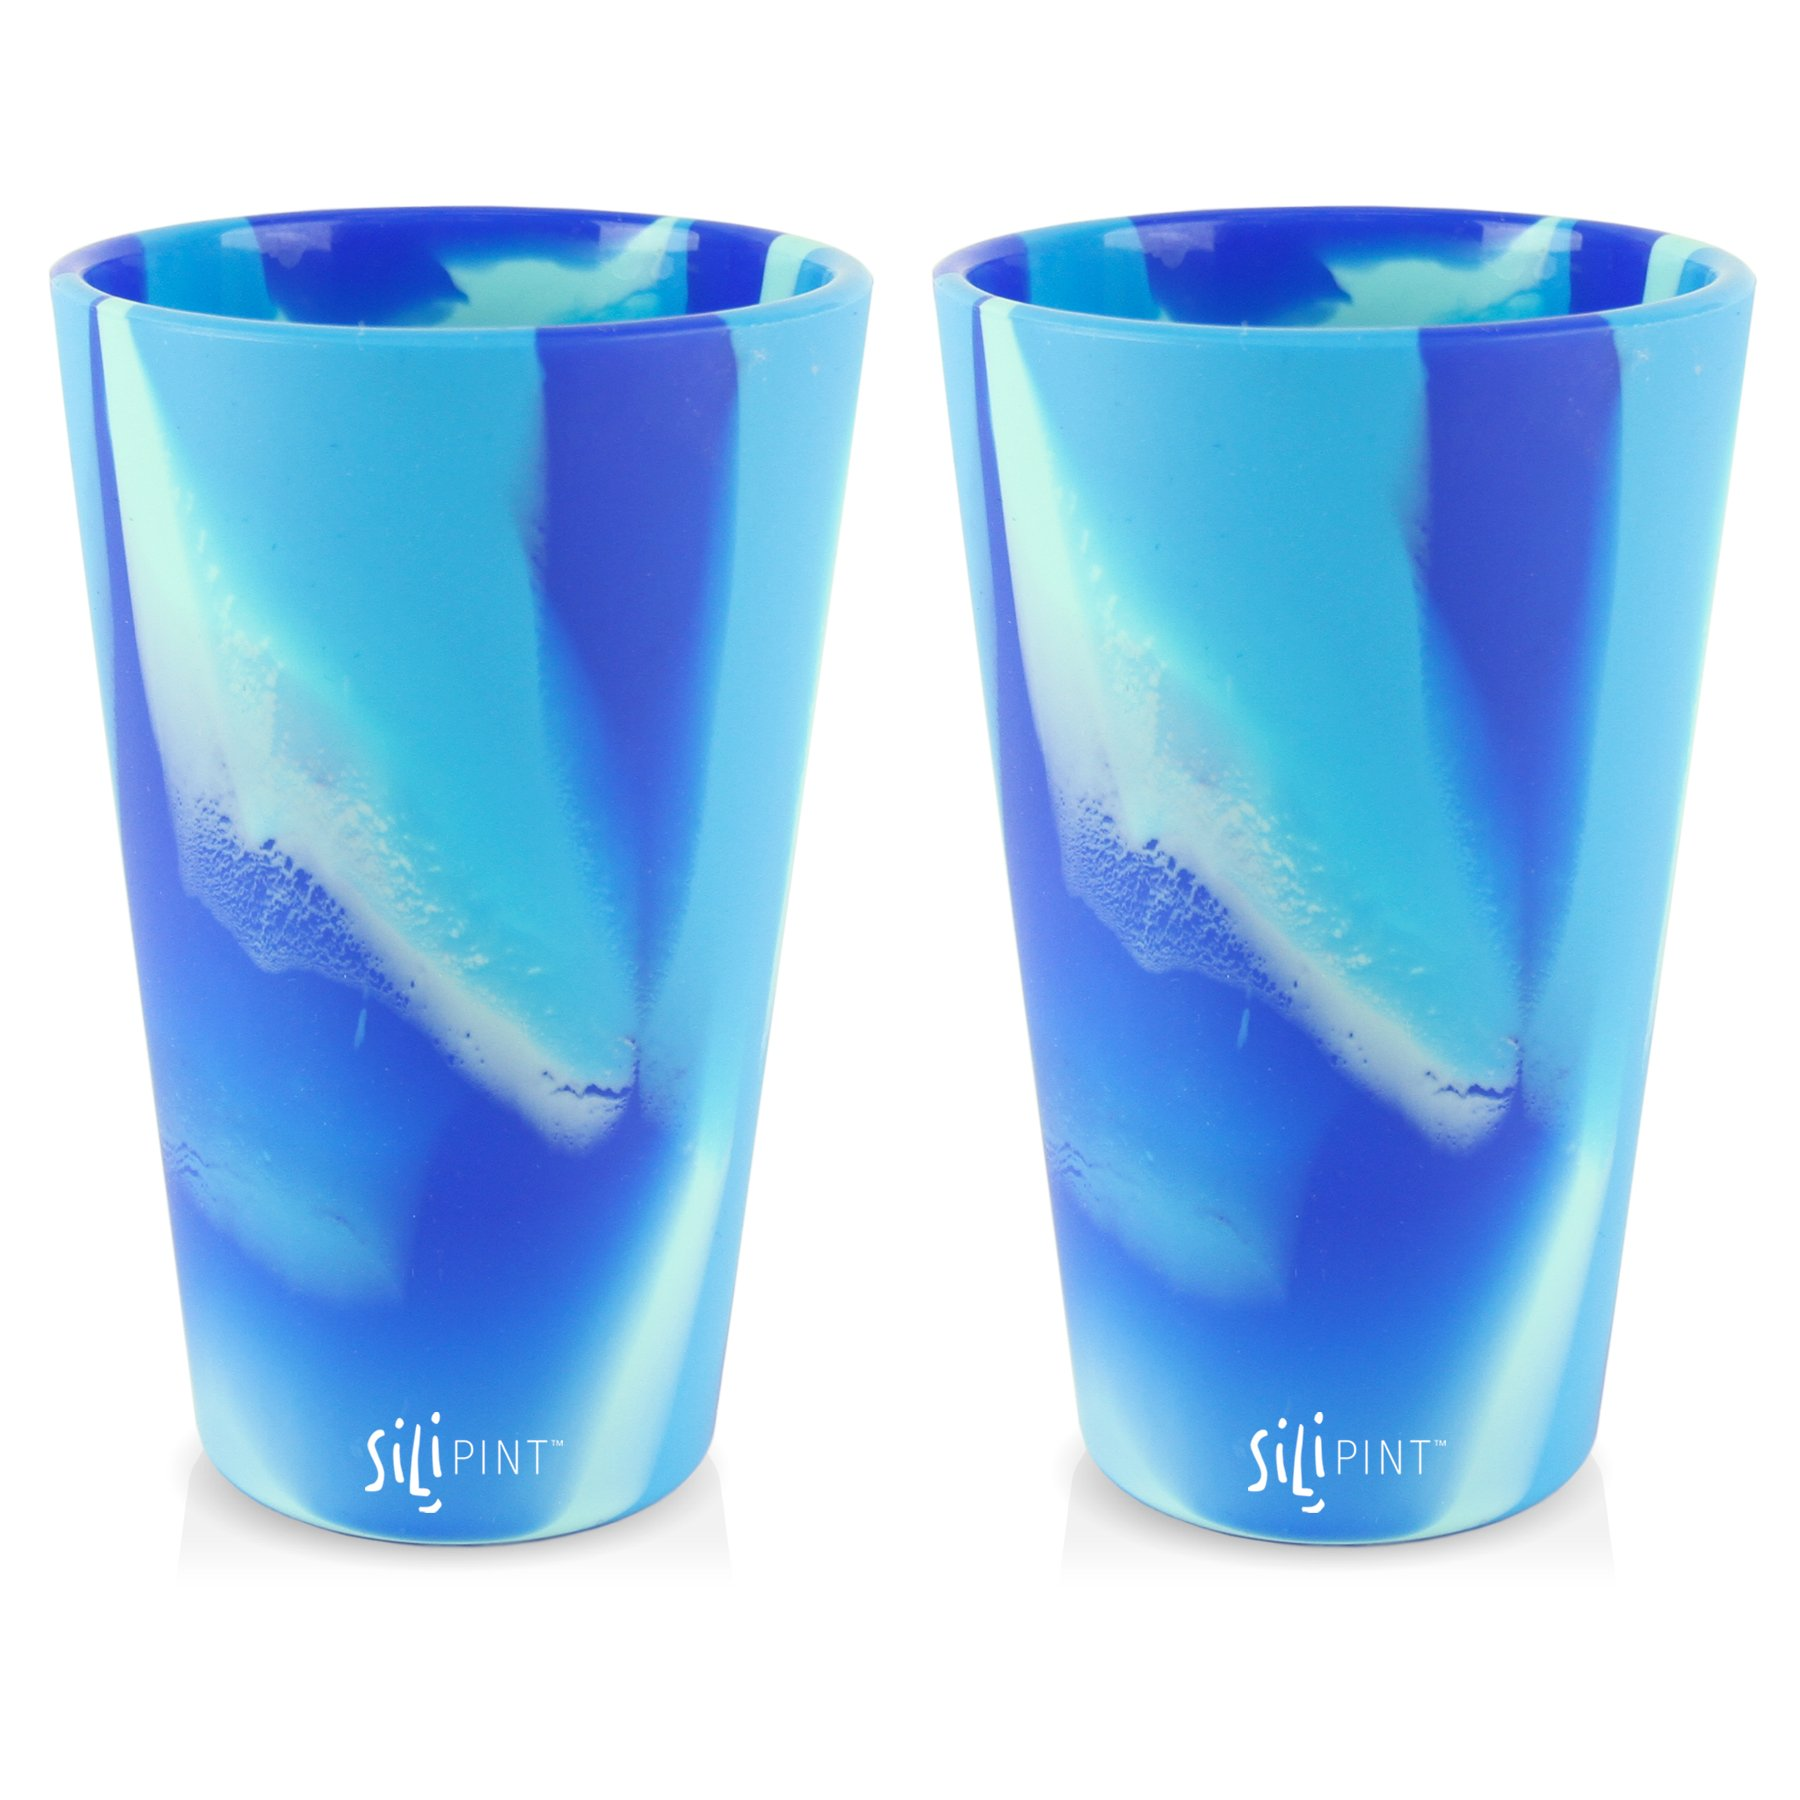 Silipint 2-Pack Arctic Sky - Silicone Cup Drinkware, BPA-Free, Unbreakable, Microwave Safe, Shatter-Proof - For Any Drink Use, Traveling, Camping, Hiking, Hanging Out, Small or Large Parties